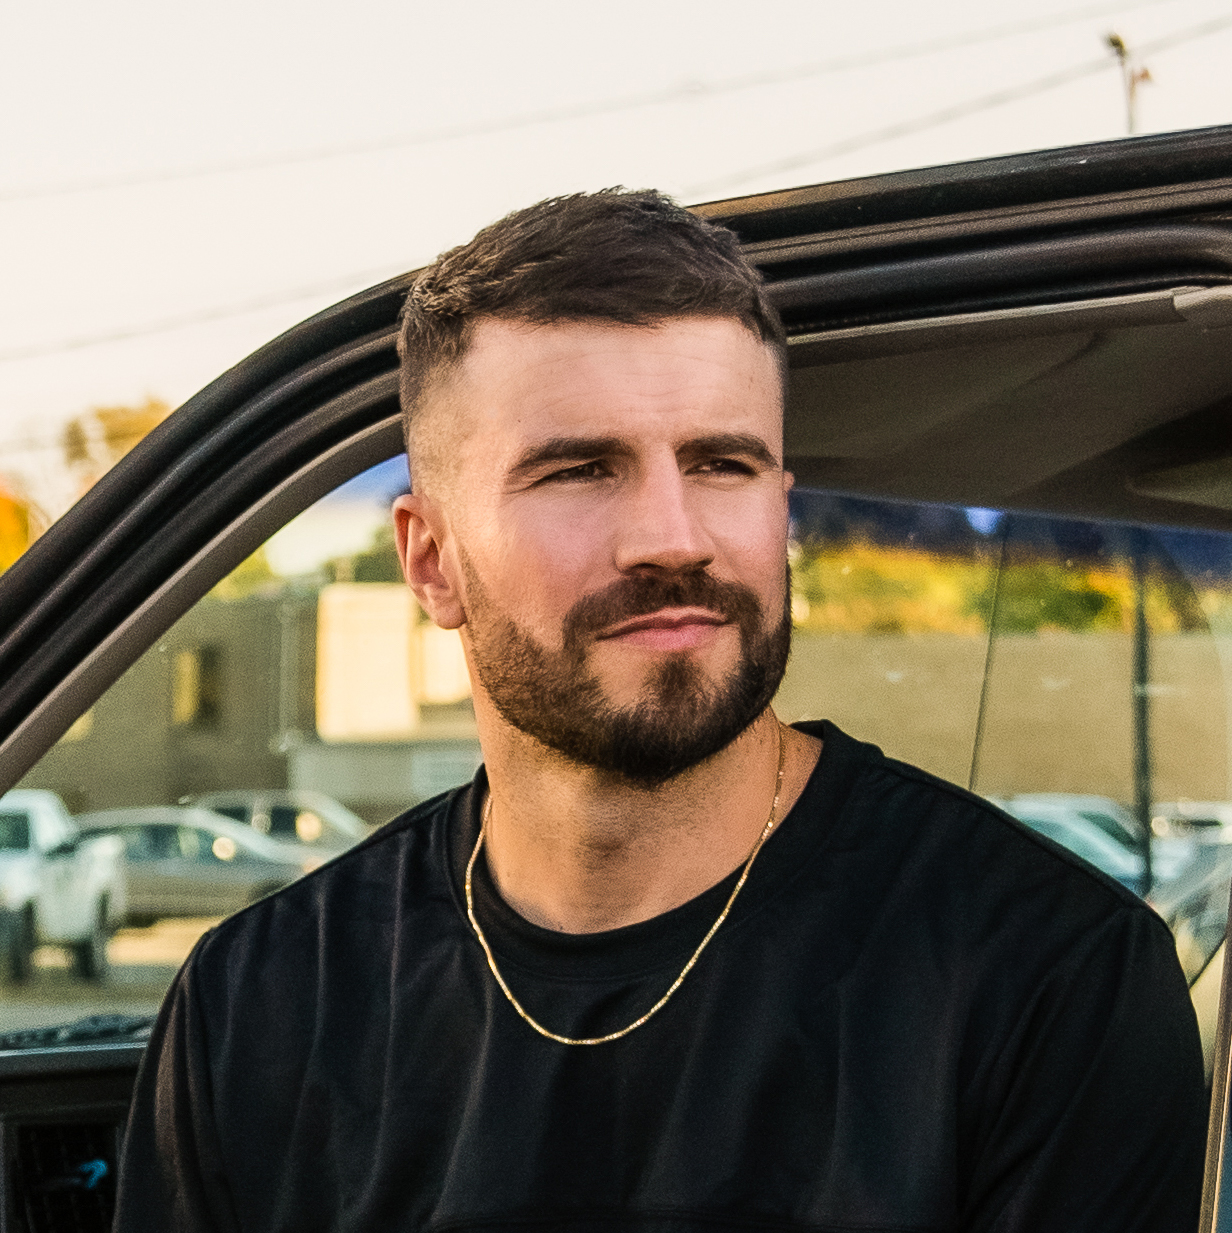 SAM HUNT PERFORMED HIS NEW SINGLE ON THE TONIGHT SHOW.